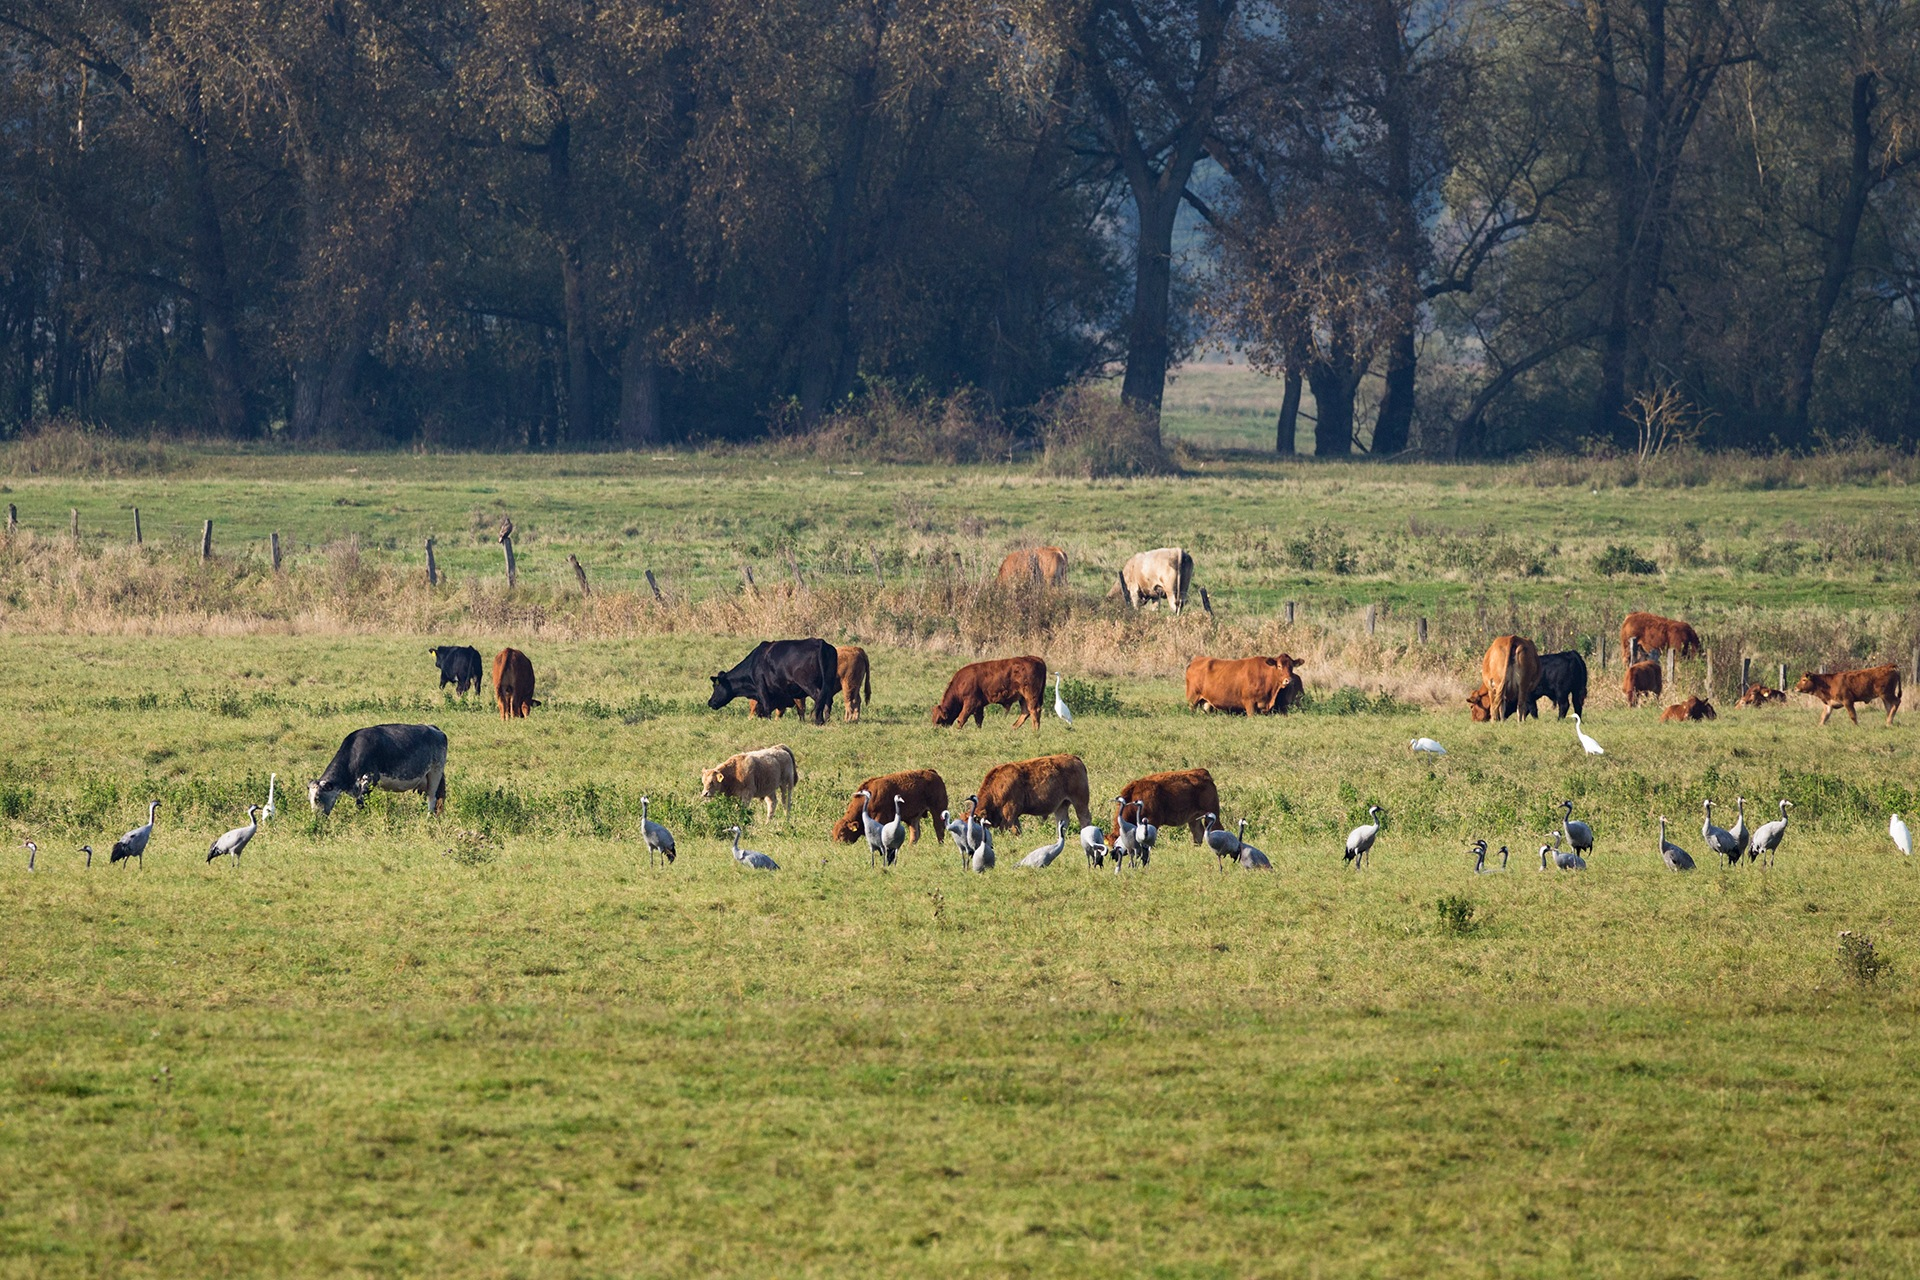 Cows and Cranes / Kühe und Kraniche by Maik Richter Photography